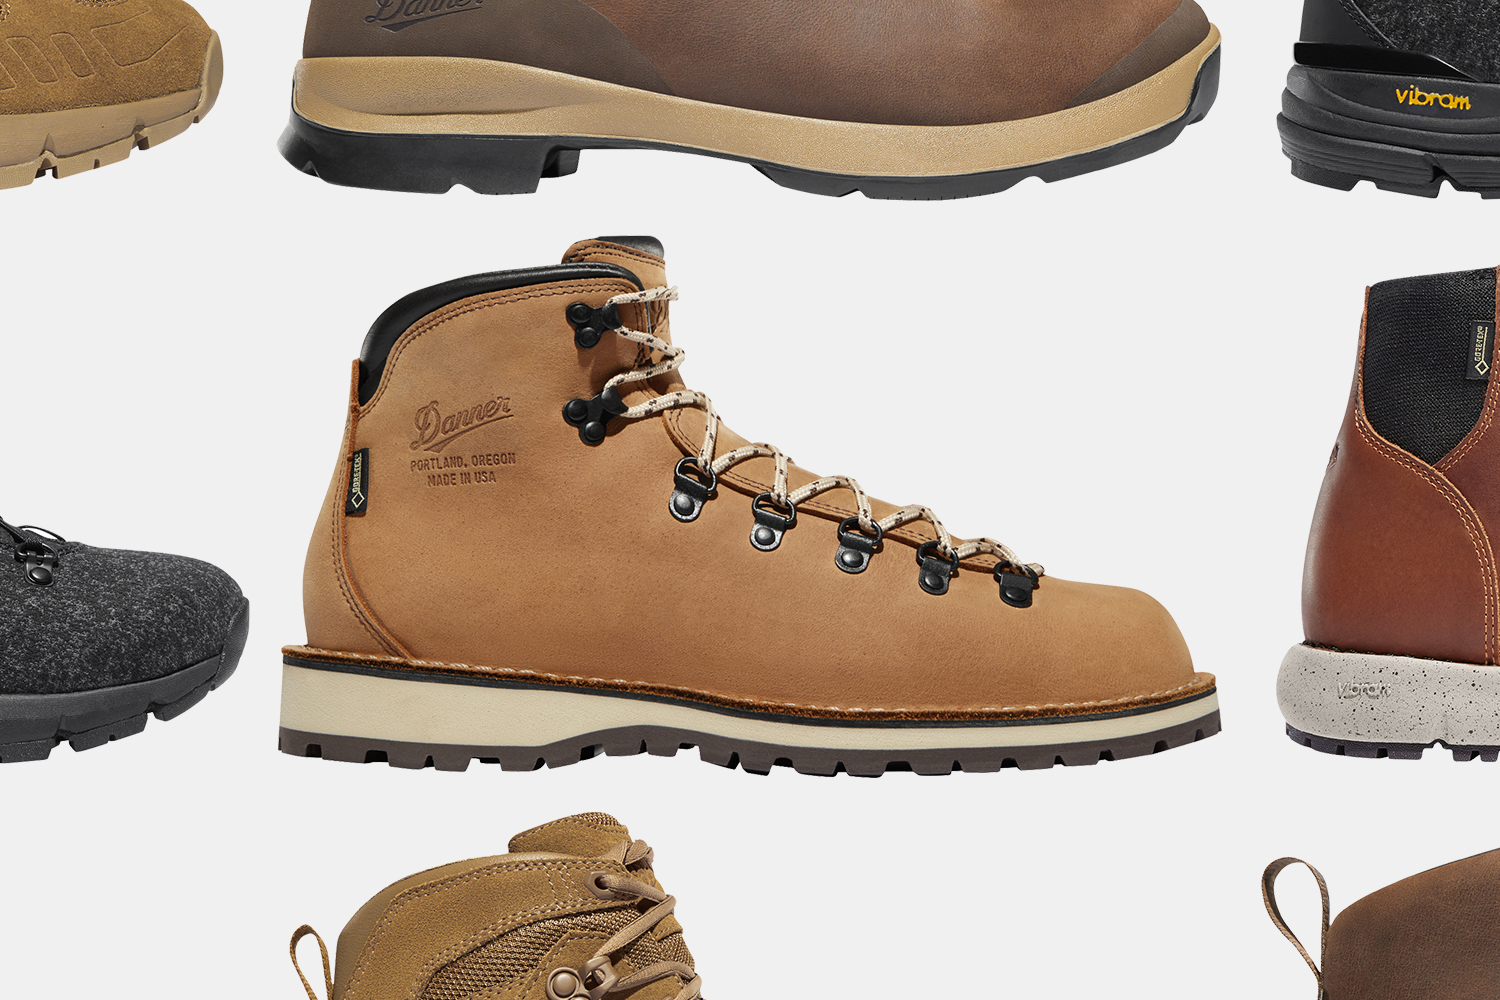 Danner Men's Hiking Boots Are on Sale